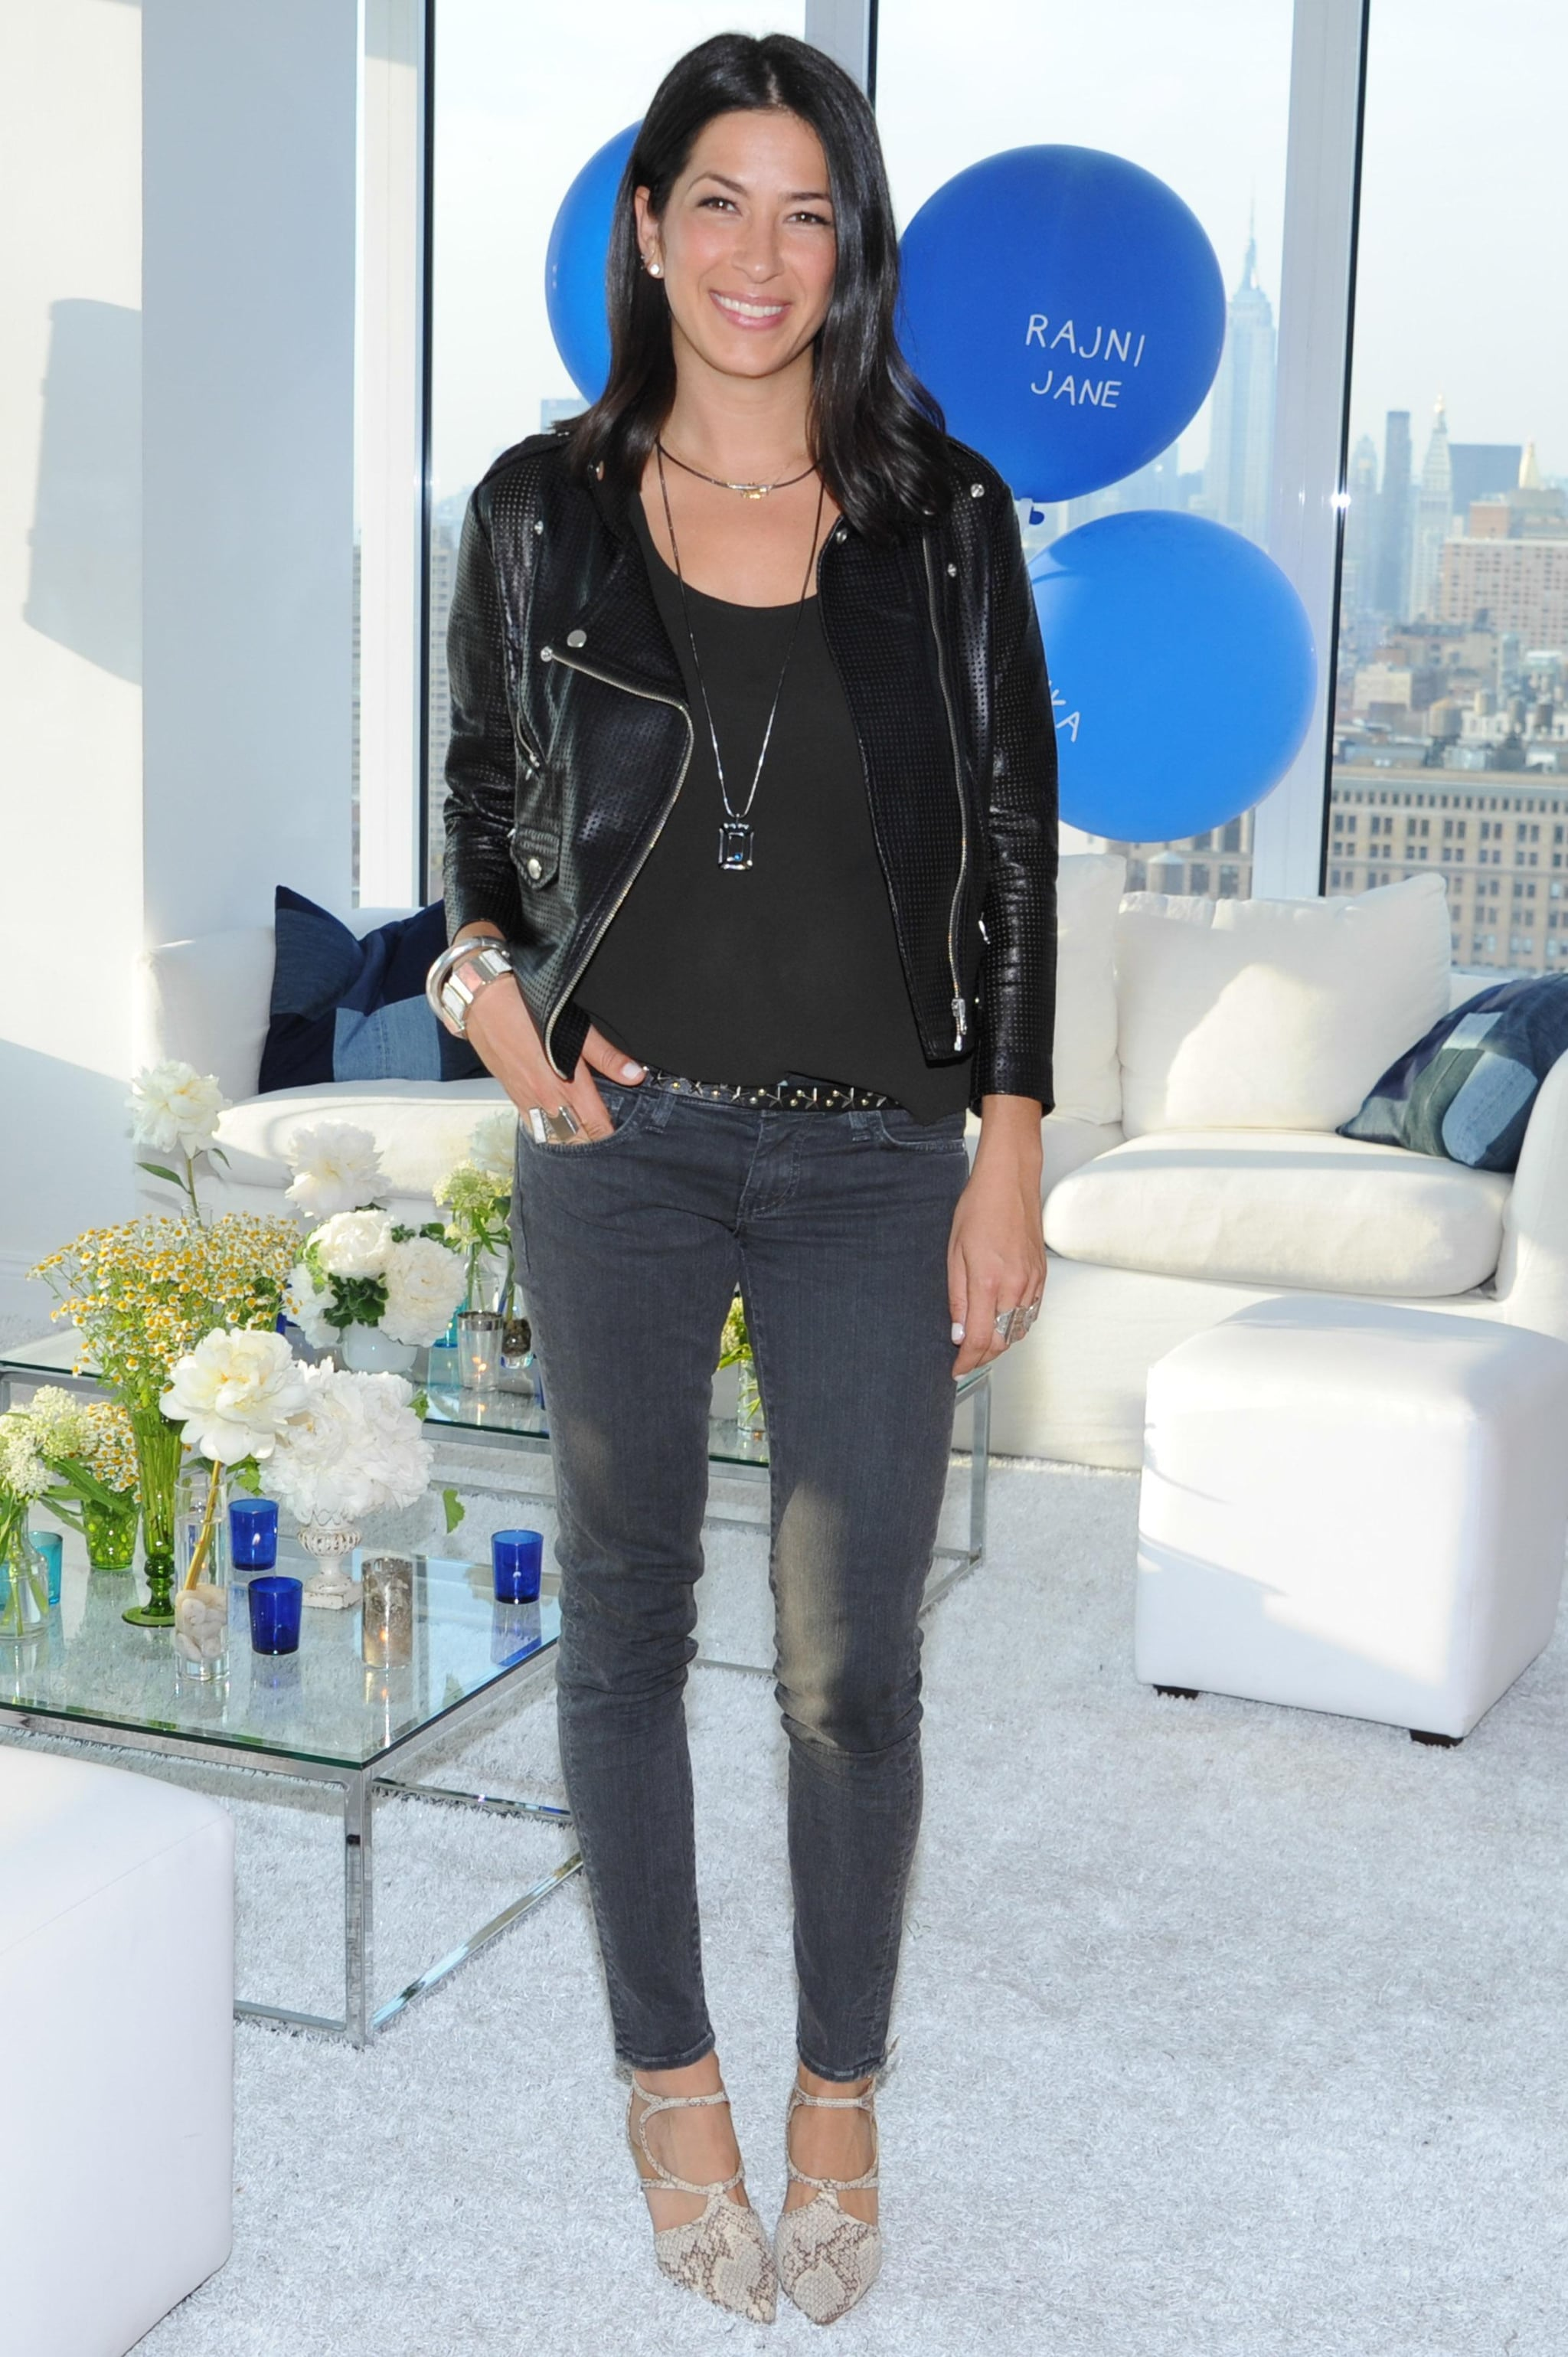 Rebecca Minkoff at the Rebecca Minkoff dinner for the label's denim collection in New York. Source: Billy Farrell/BFAnyc.com